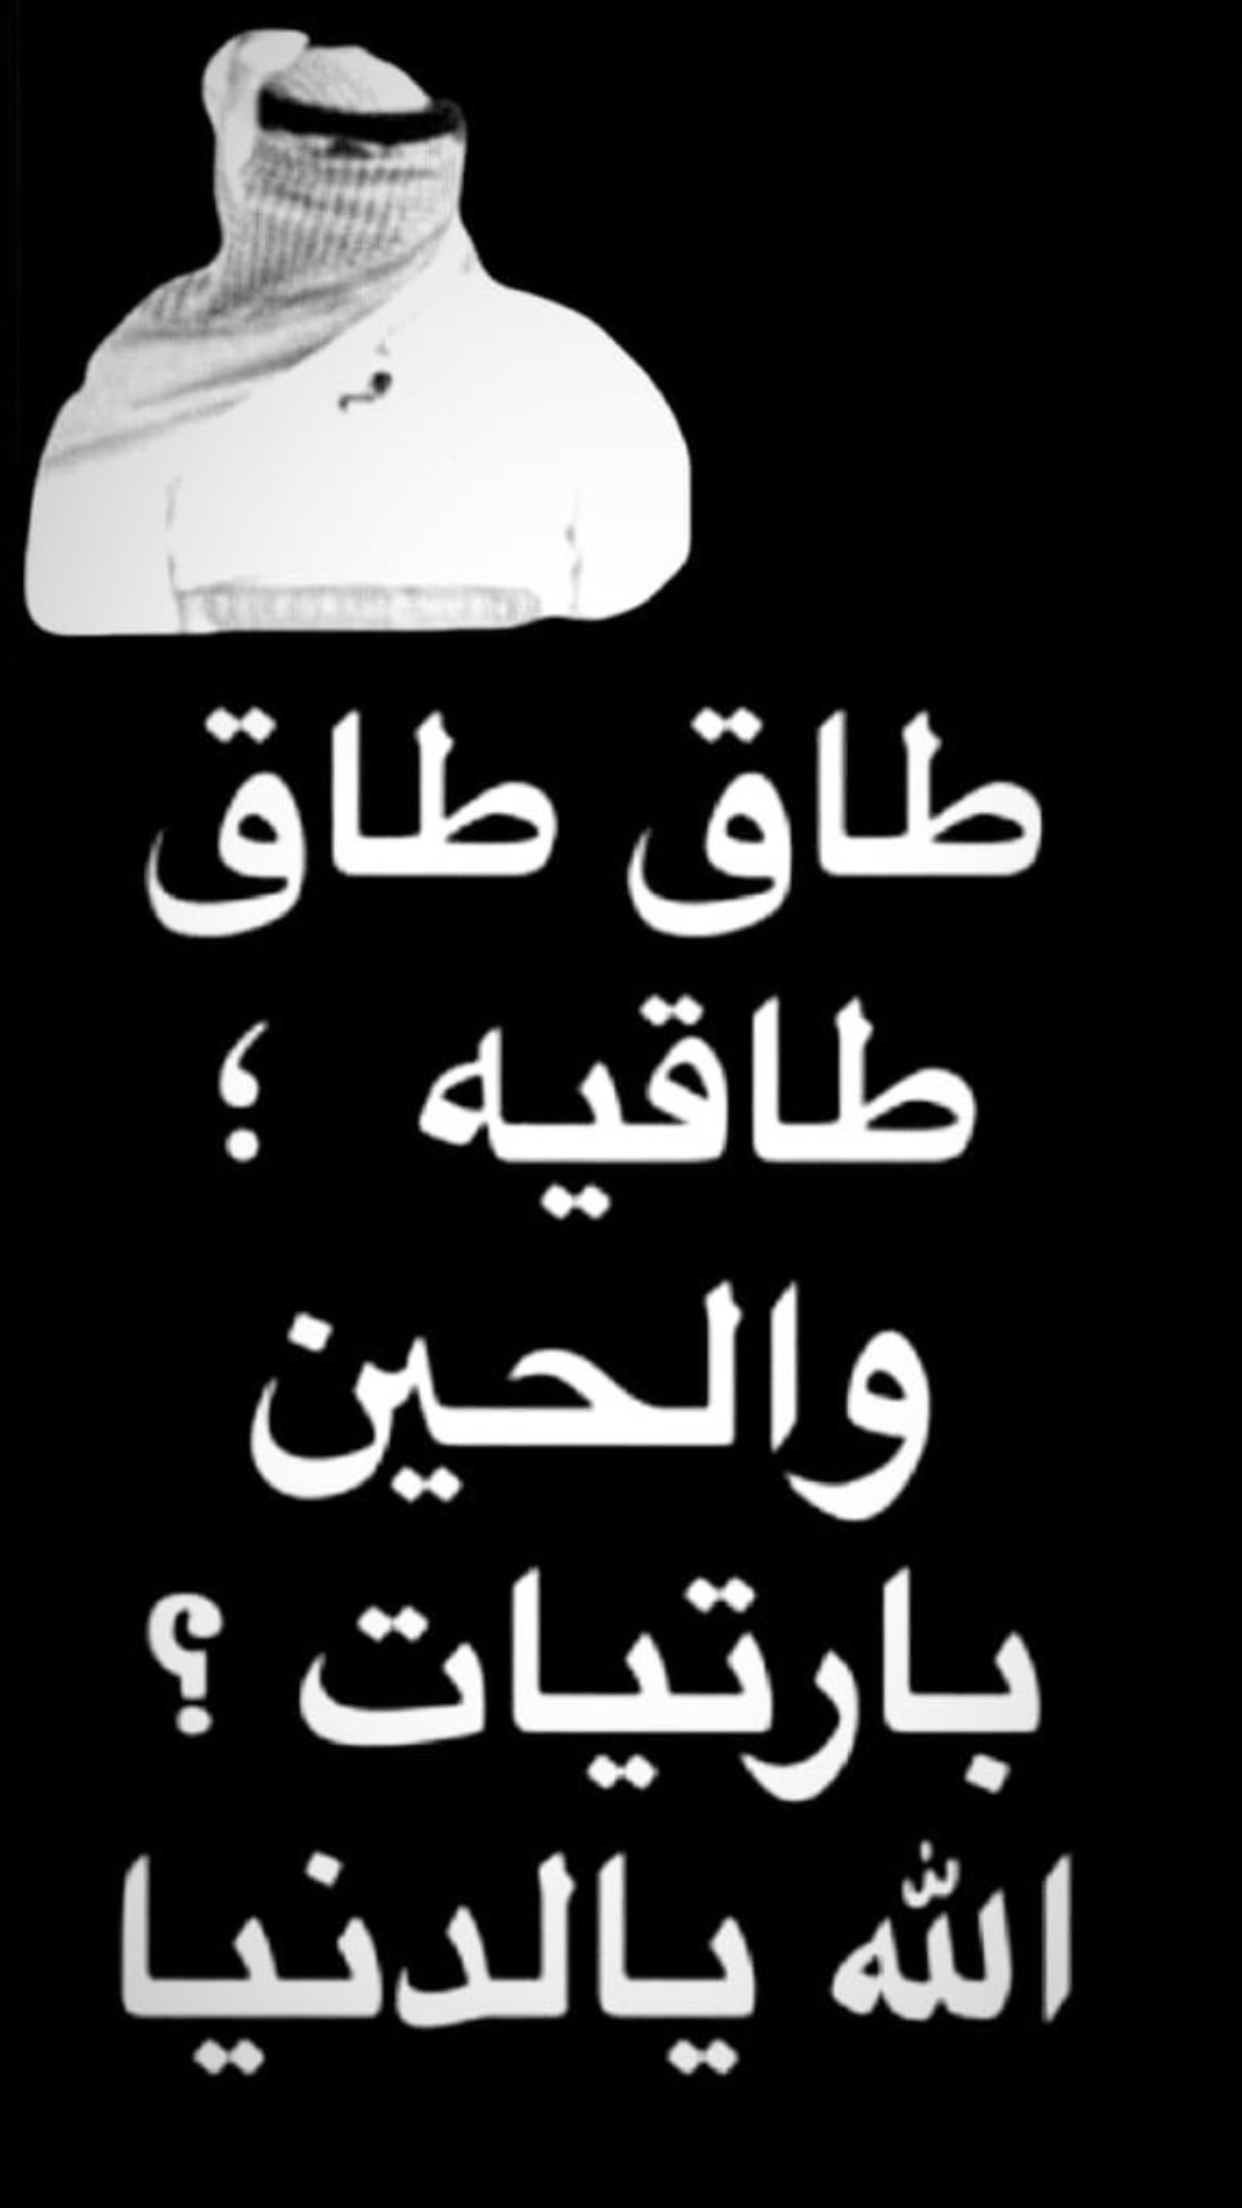 Pin By Asma On Quotation Laughing Quotes Study Motivation Quotes Funny Arabic Quotes